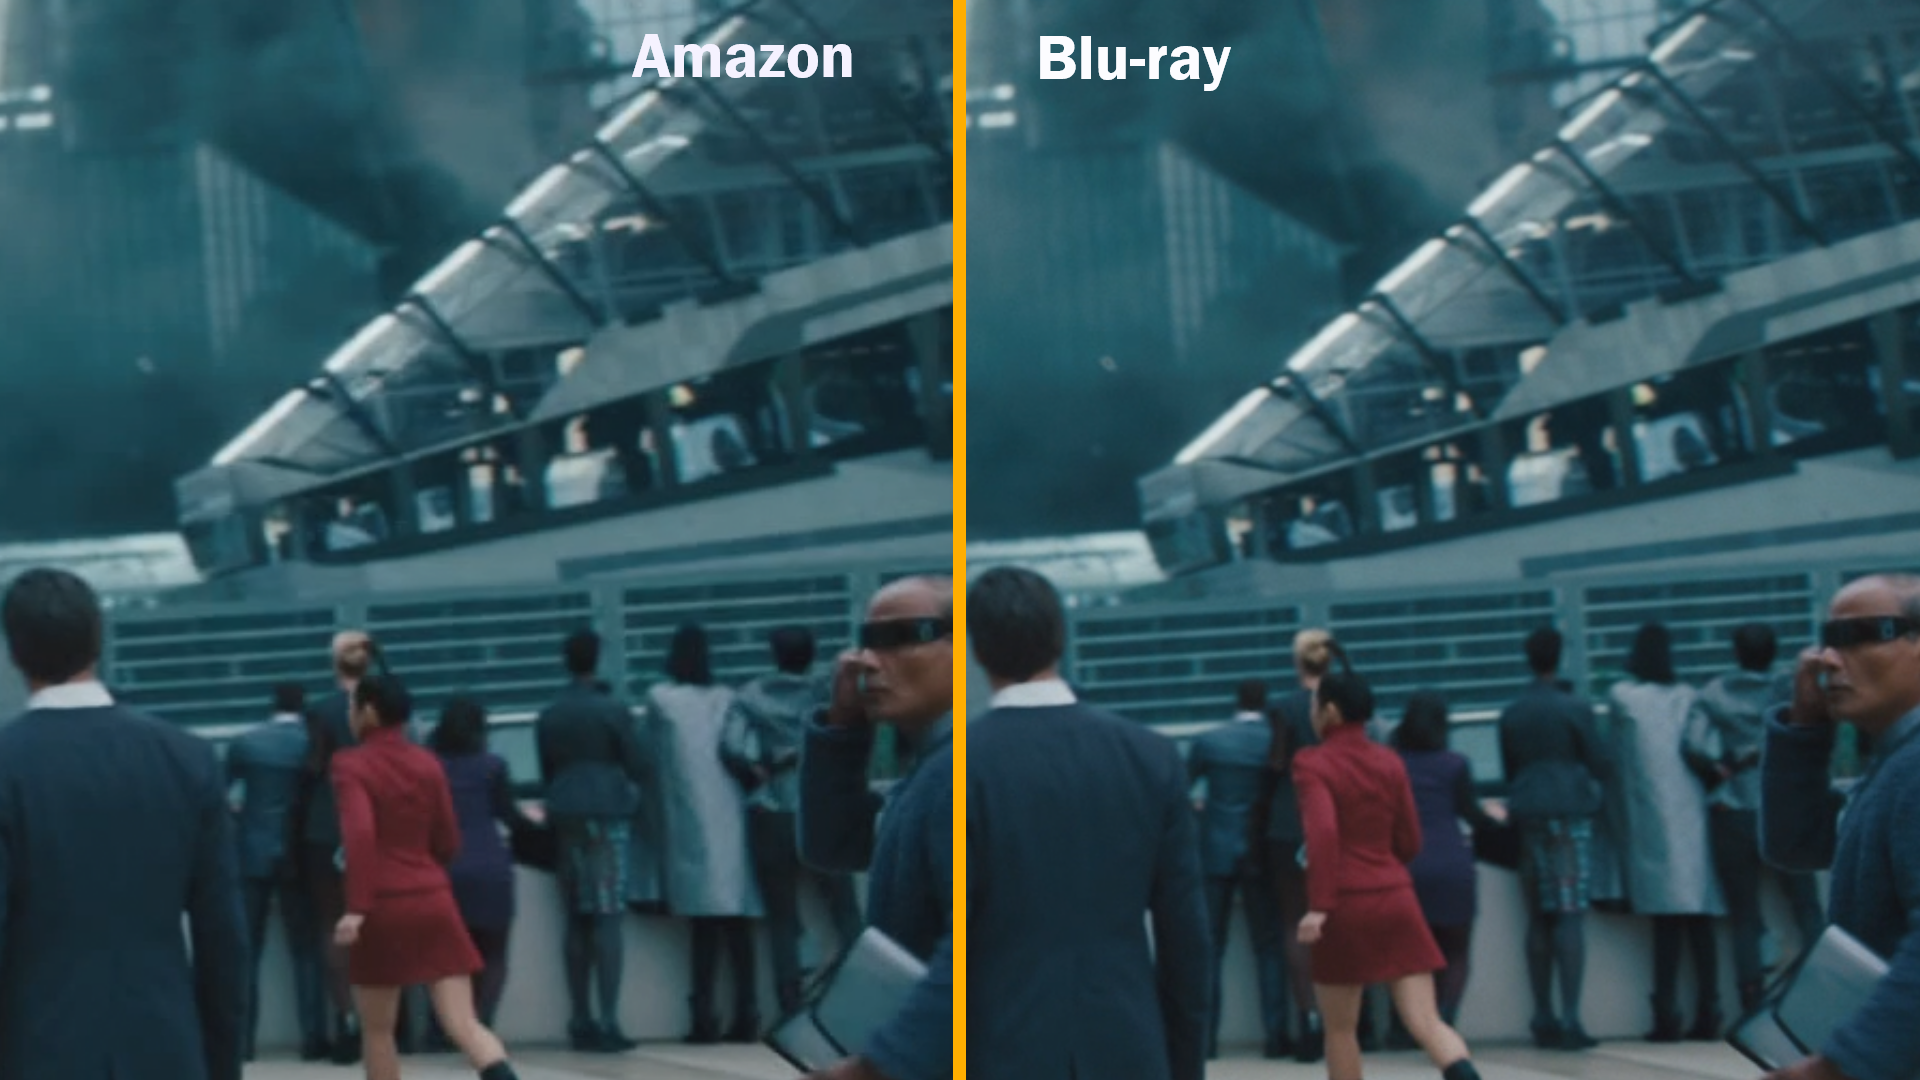 Blu-ray vs streaming – which has the best quality? | Expert